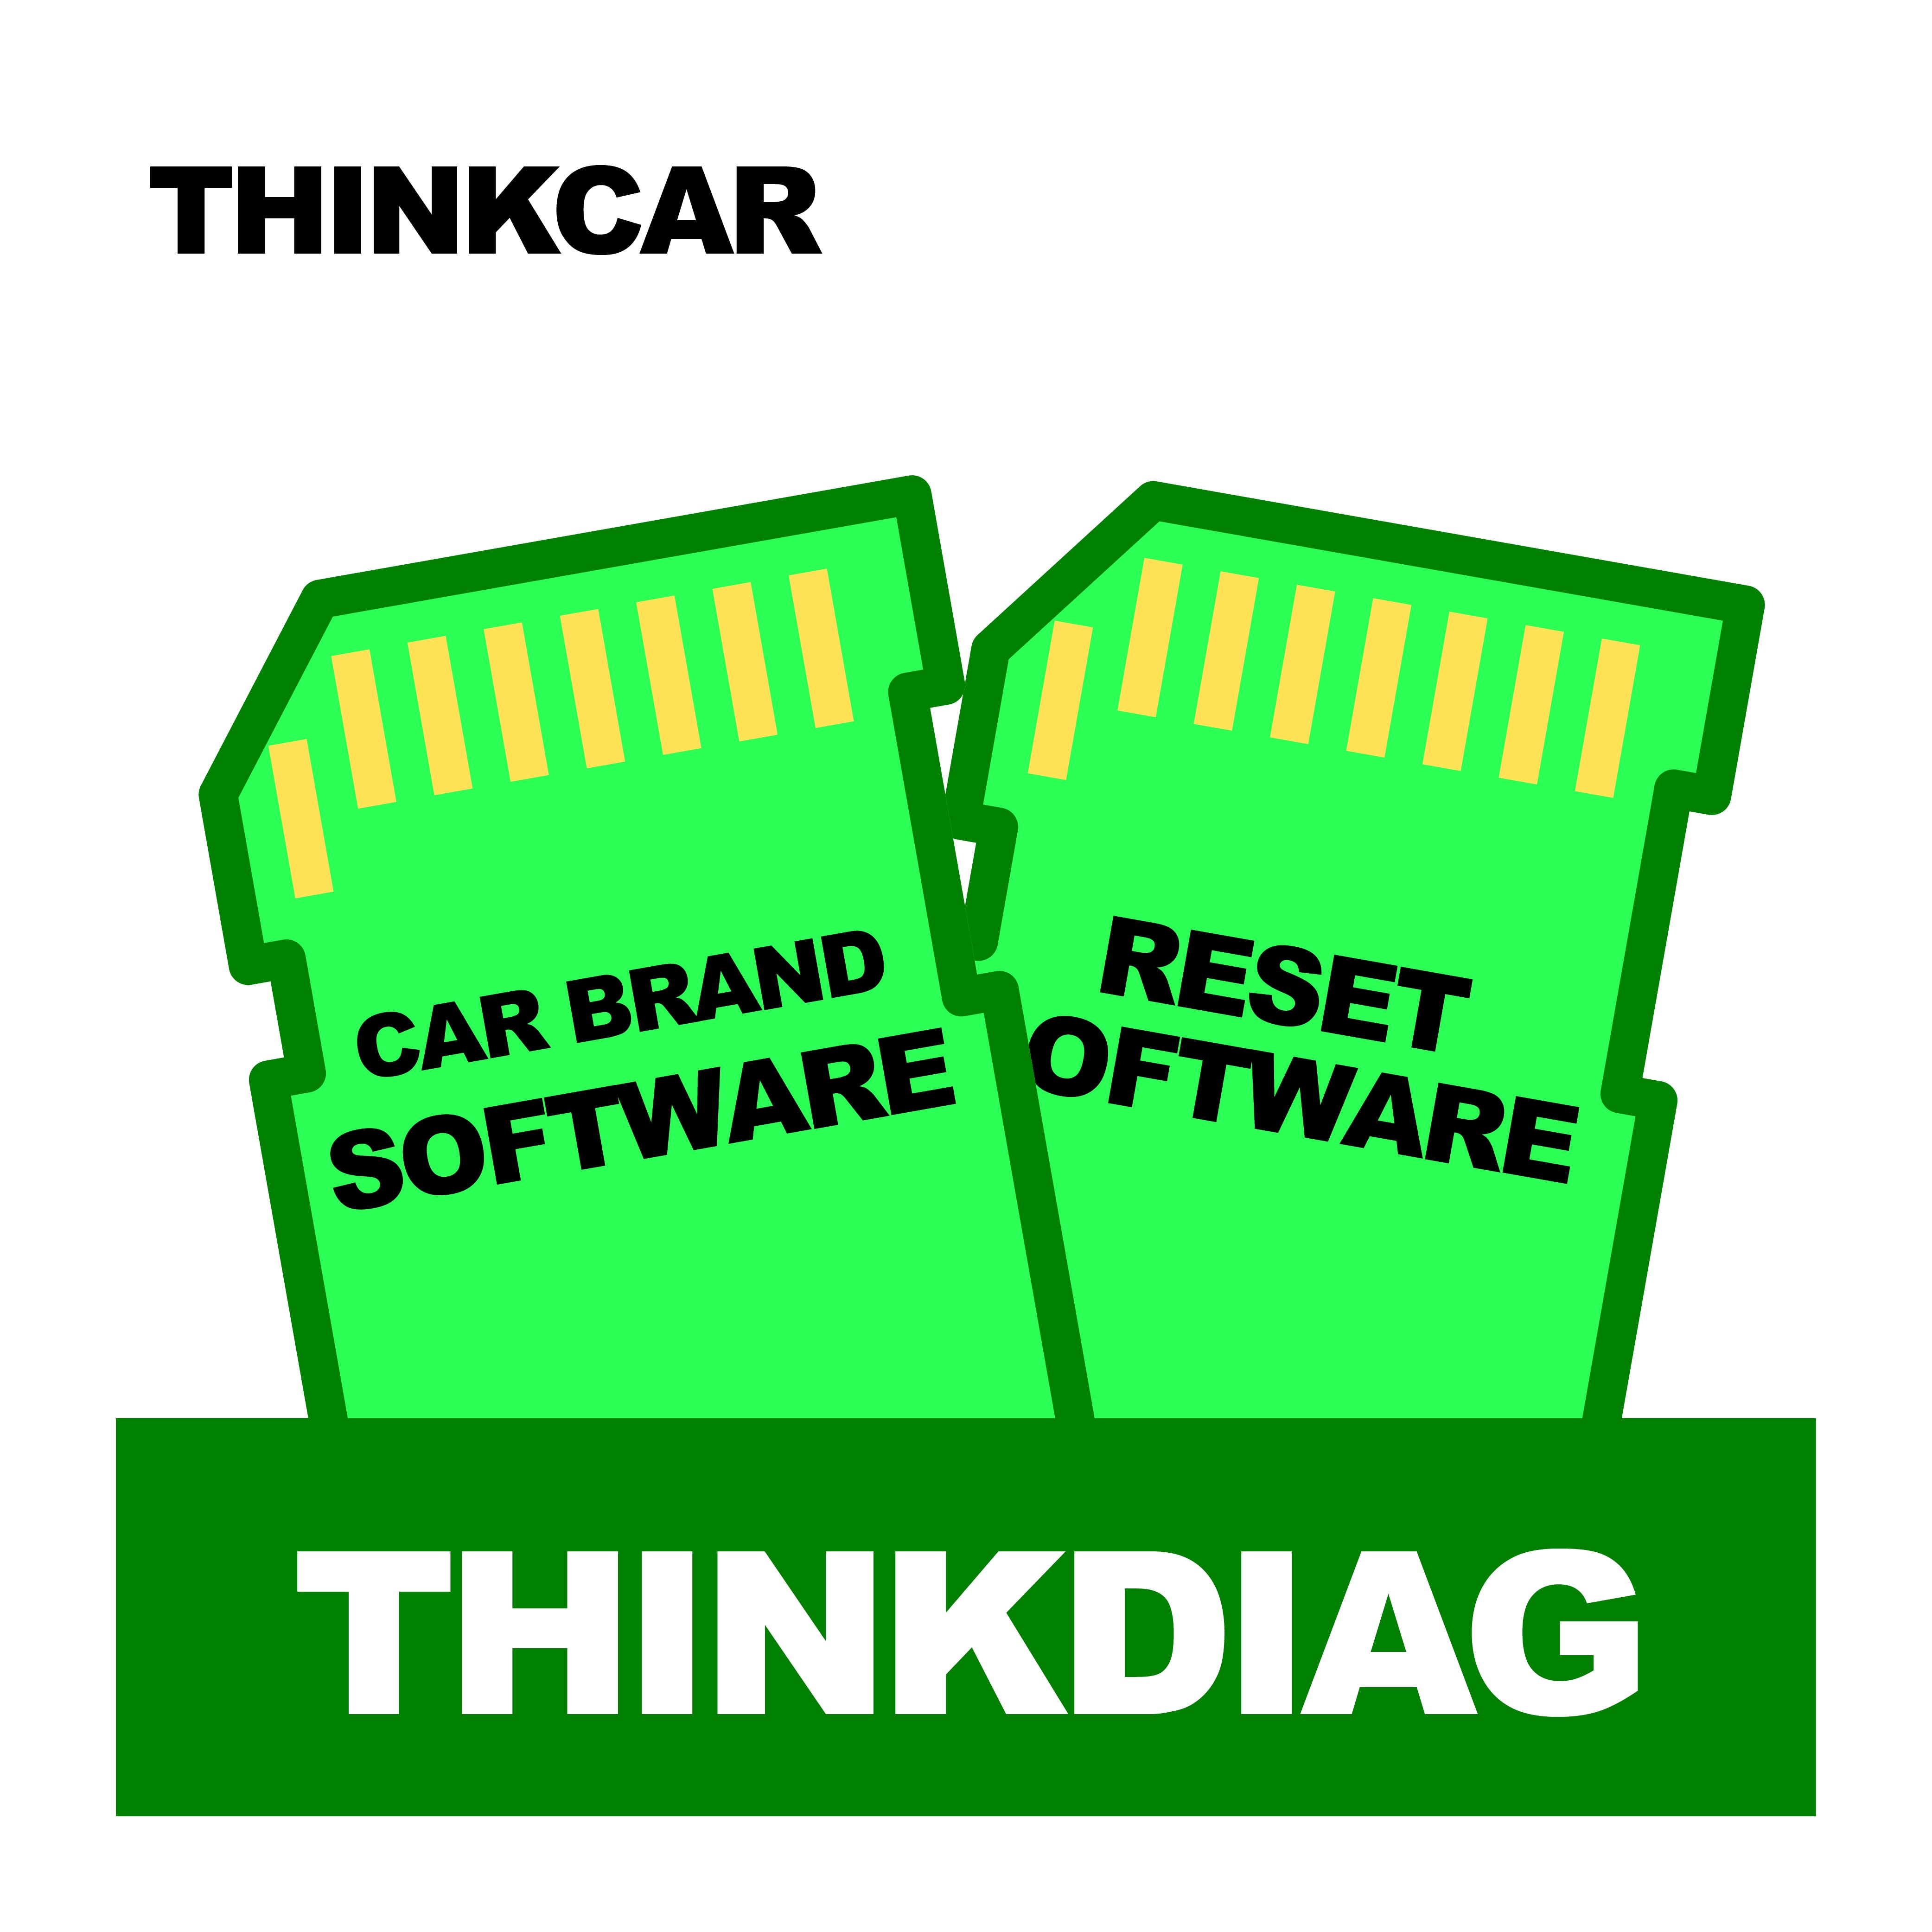 1/2/3/4/5 Year THINKCAR Thinkdiag All software 24 hours Activate for Thinkdiag PK Easydiag Open Car Manufacturer Reset Software